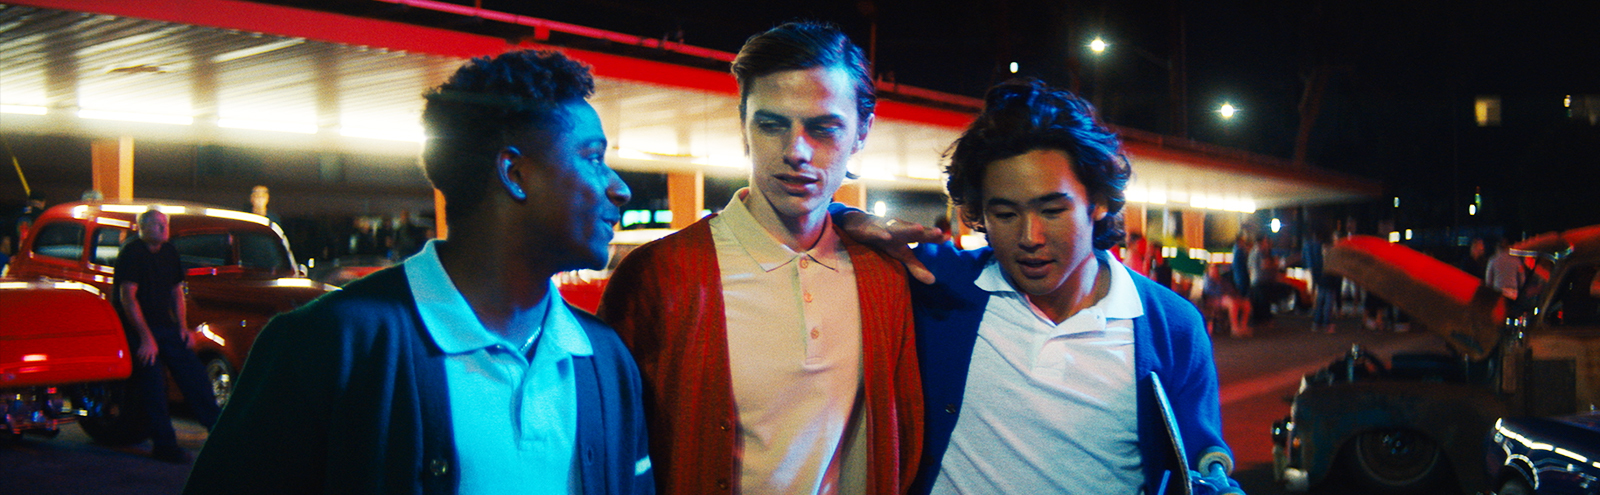 Mikey Alfred's Gorgeous Debut 'North Hollywood' Gives Gen Z LA Skaters The 'American Graffiti' Treatment